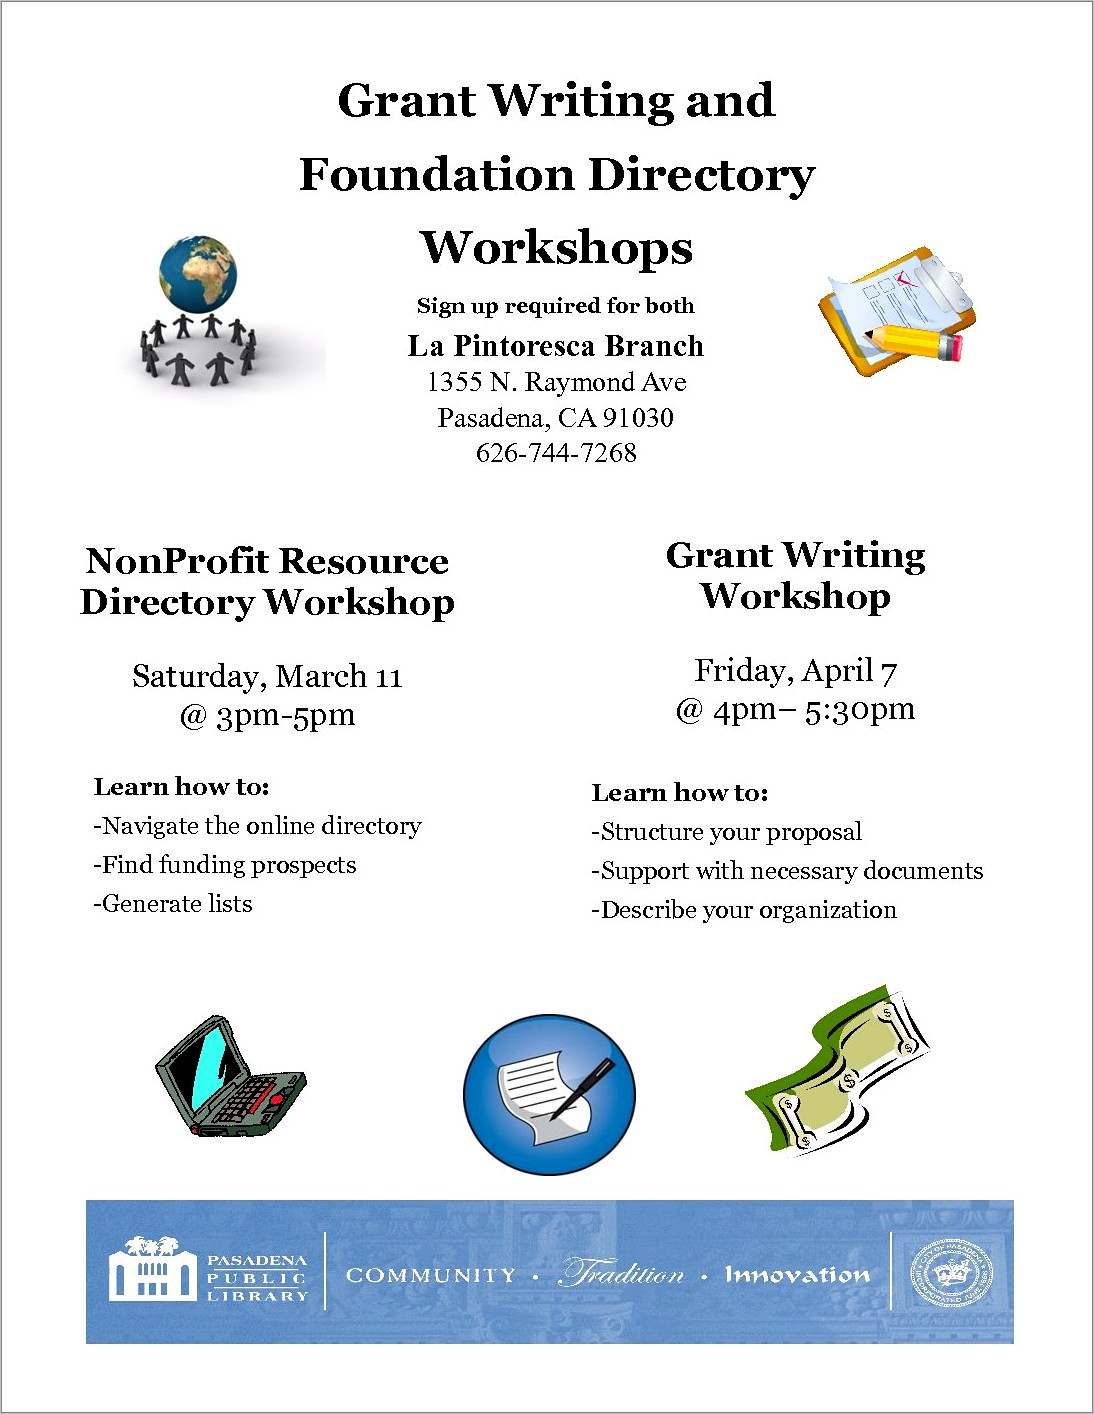 Grant Writing For Nonprofits Workshops